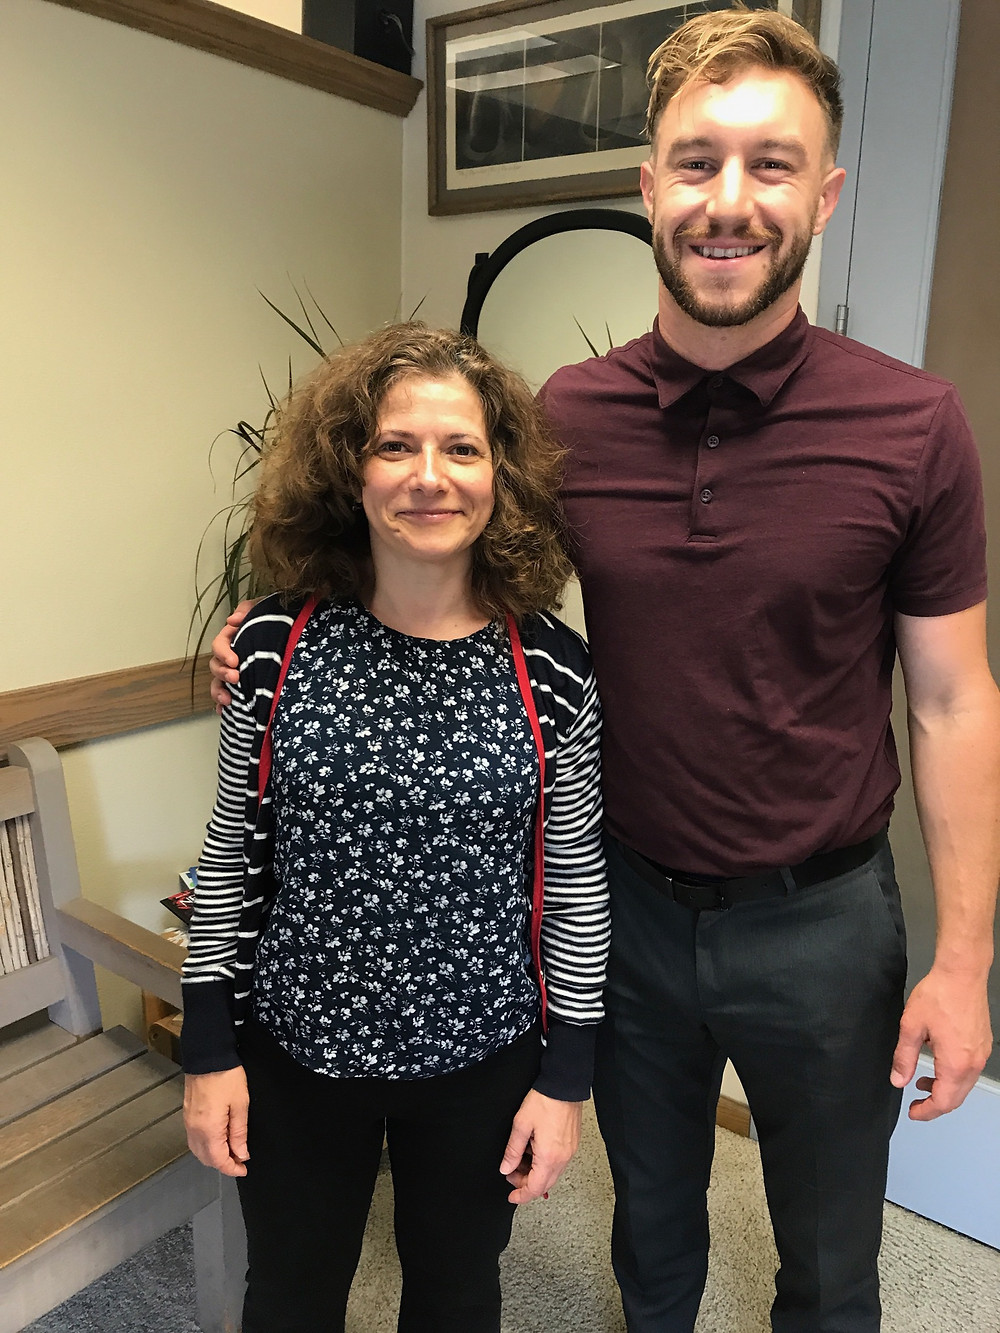 Dr. Ryan Moore with a client satisfied with her chiropractic care!